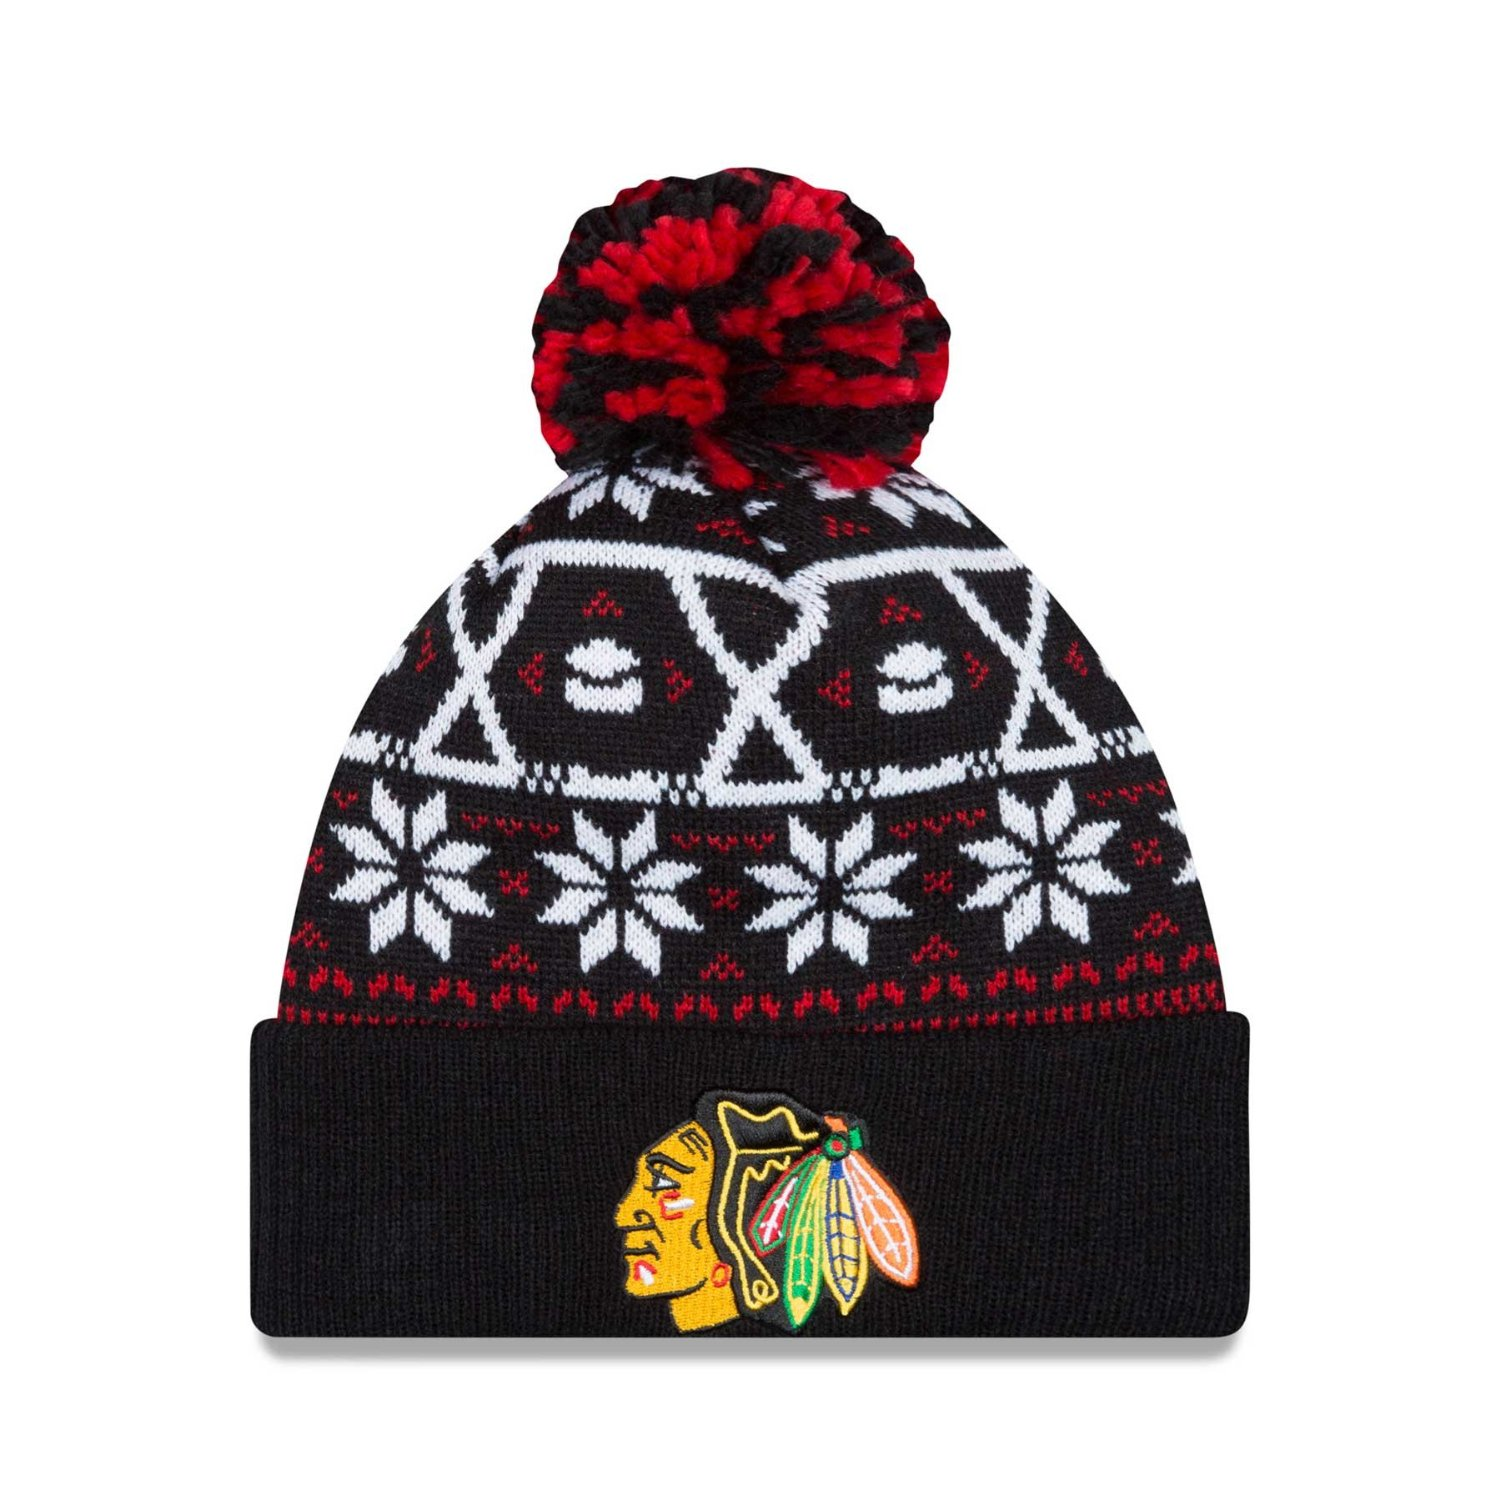 90d7de209c6 Get Quotations · Chicago Blackhawks NHL Sweater Chill Knit Hat